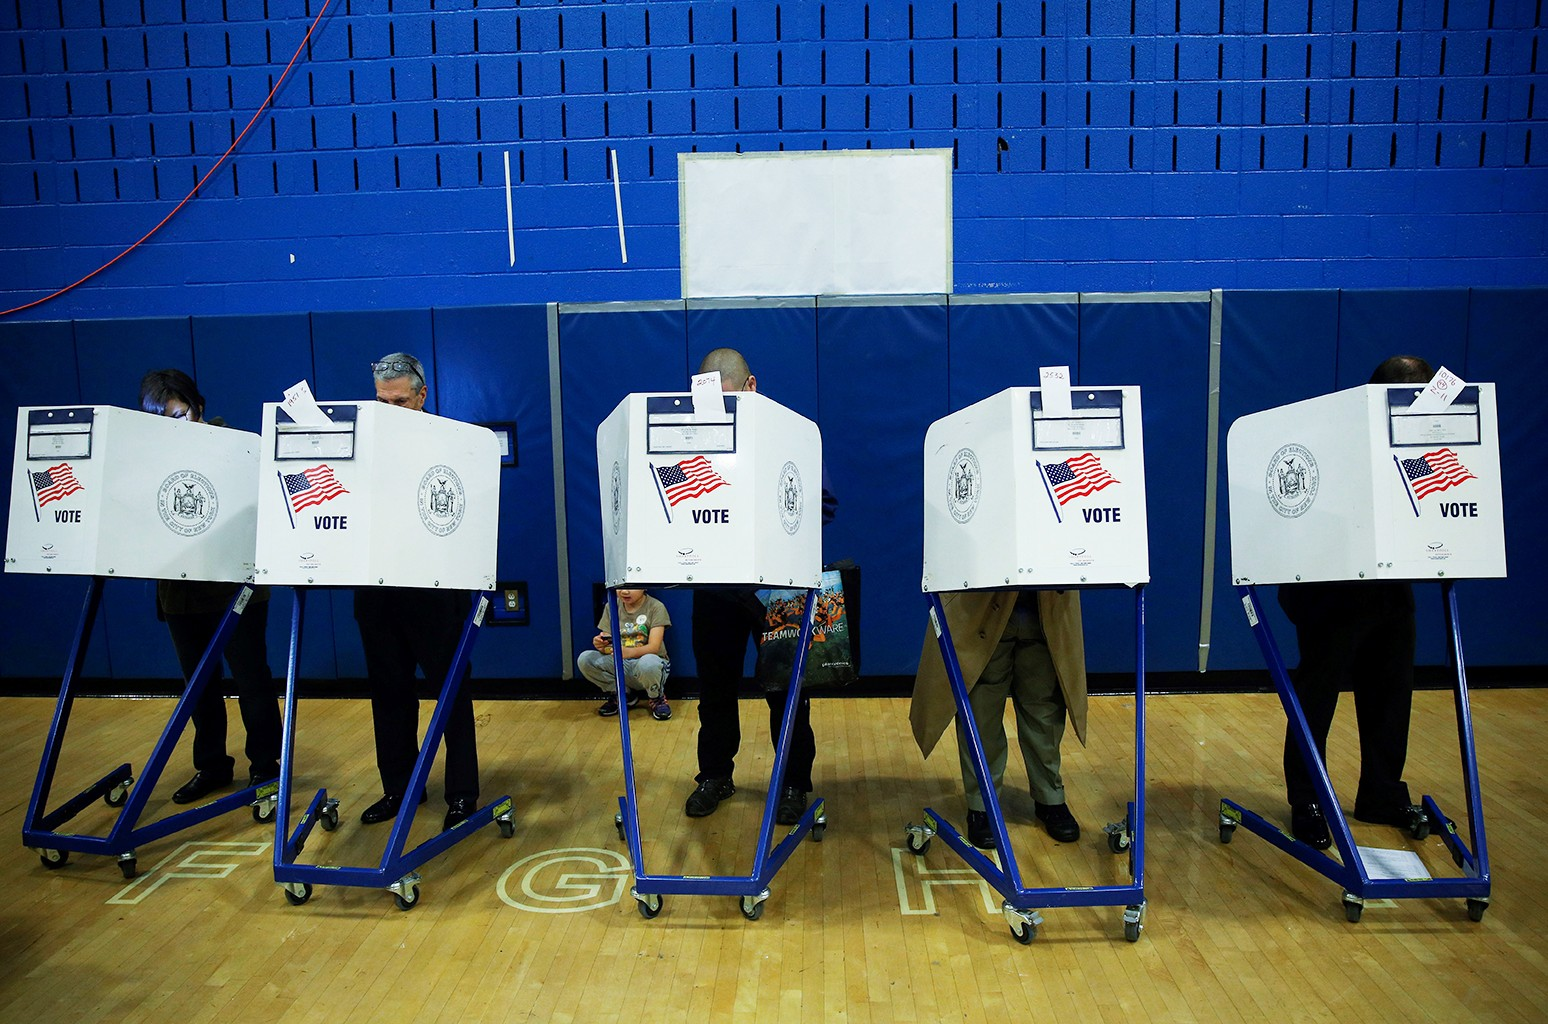 Voters cast their ballots during the midterm election at the High School Art and Design polling station in Manhattan, New York, United States on Nov. 6, 2018.